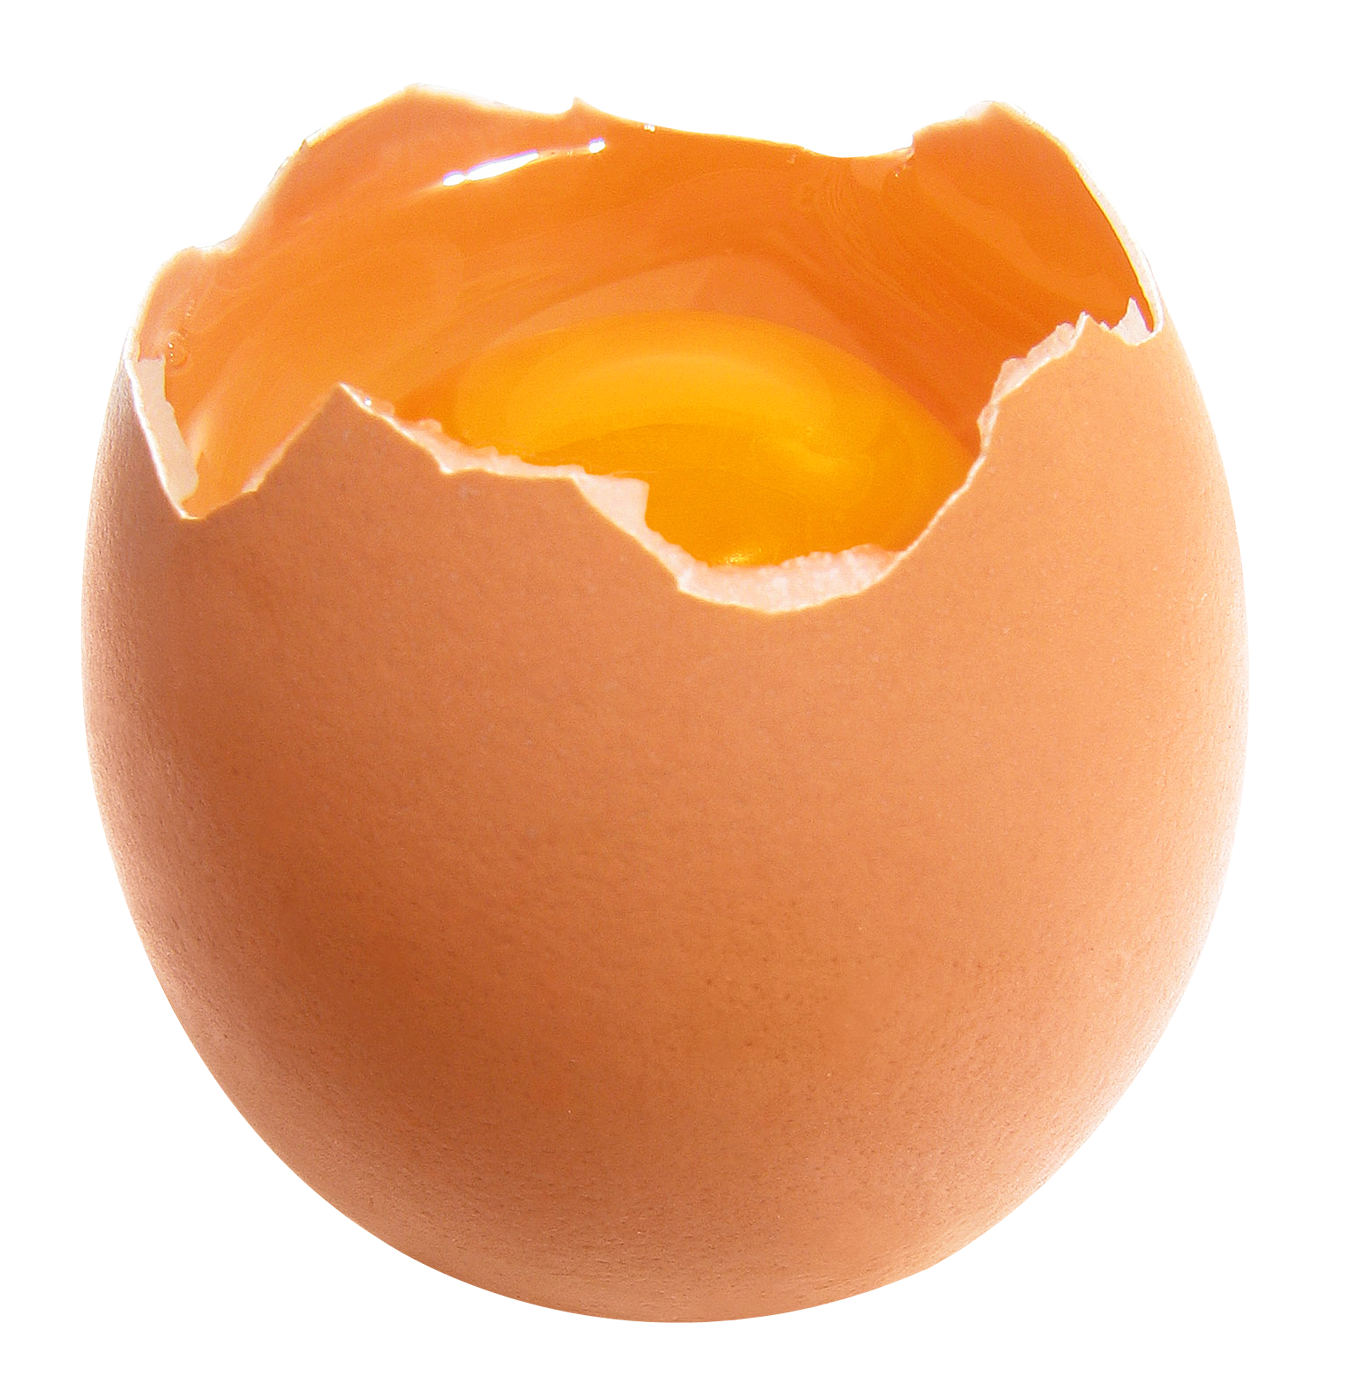 Broken Egg PNG HD - 124772